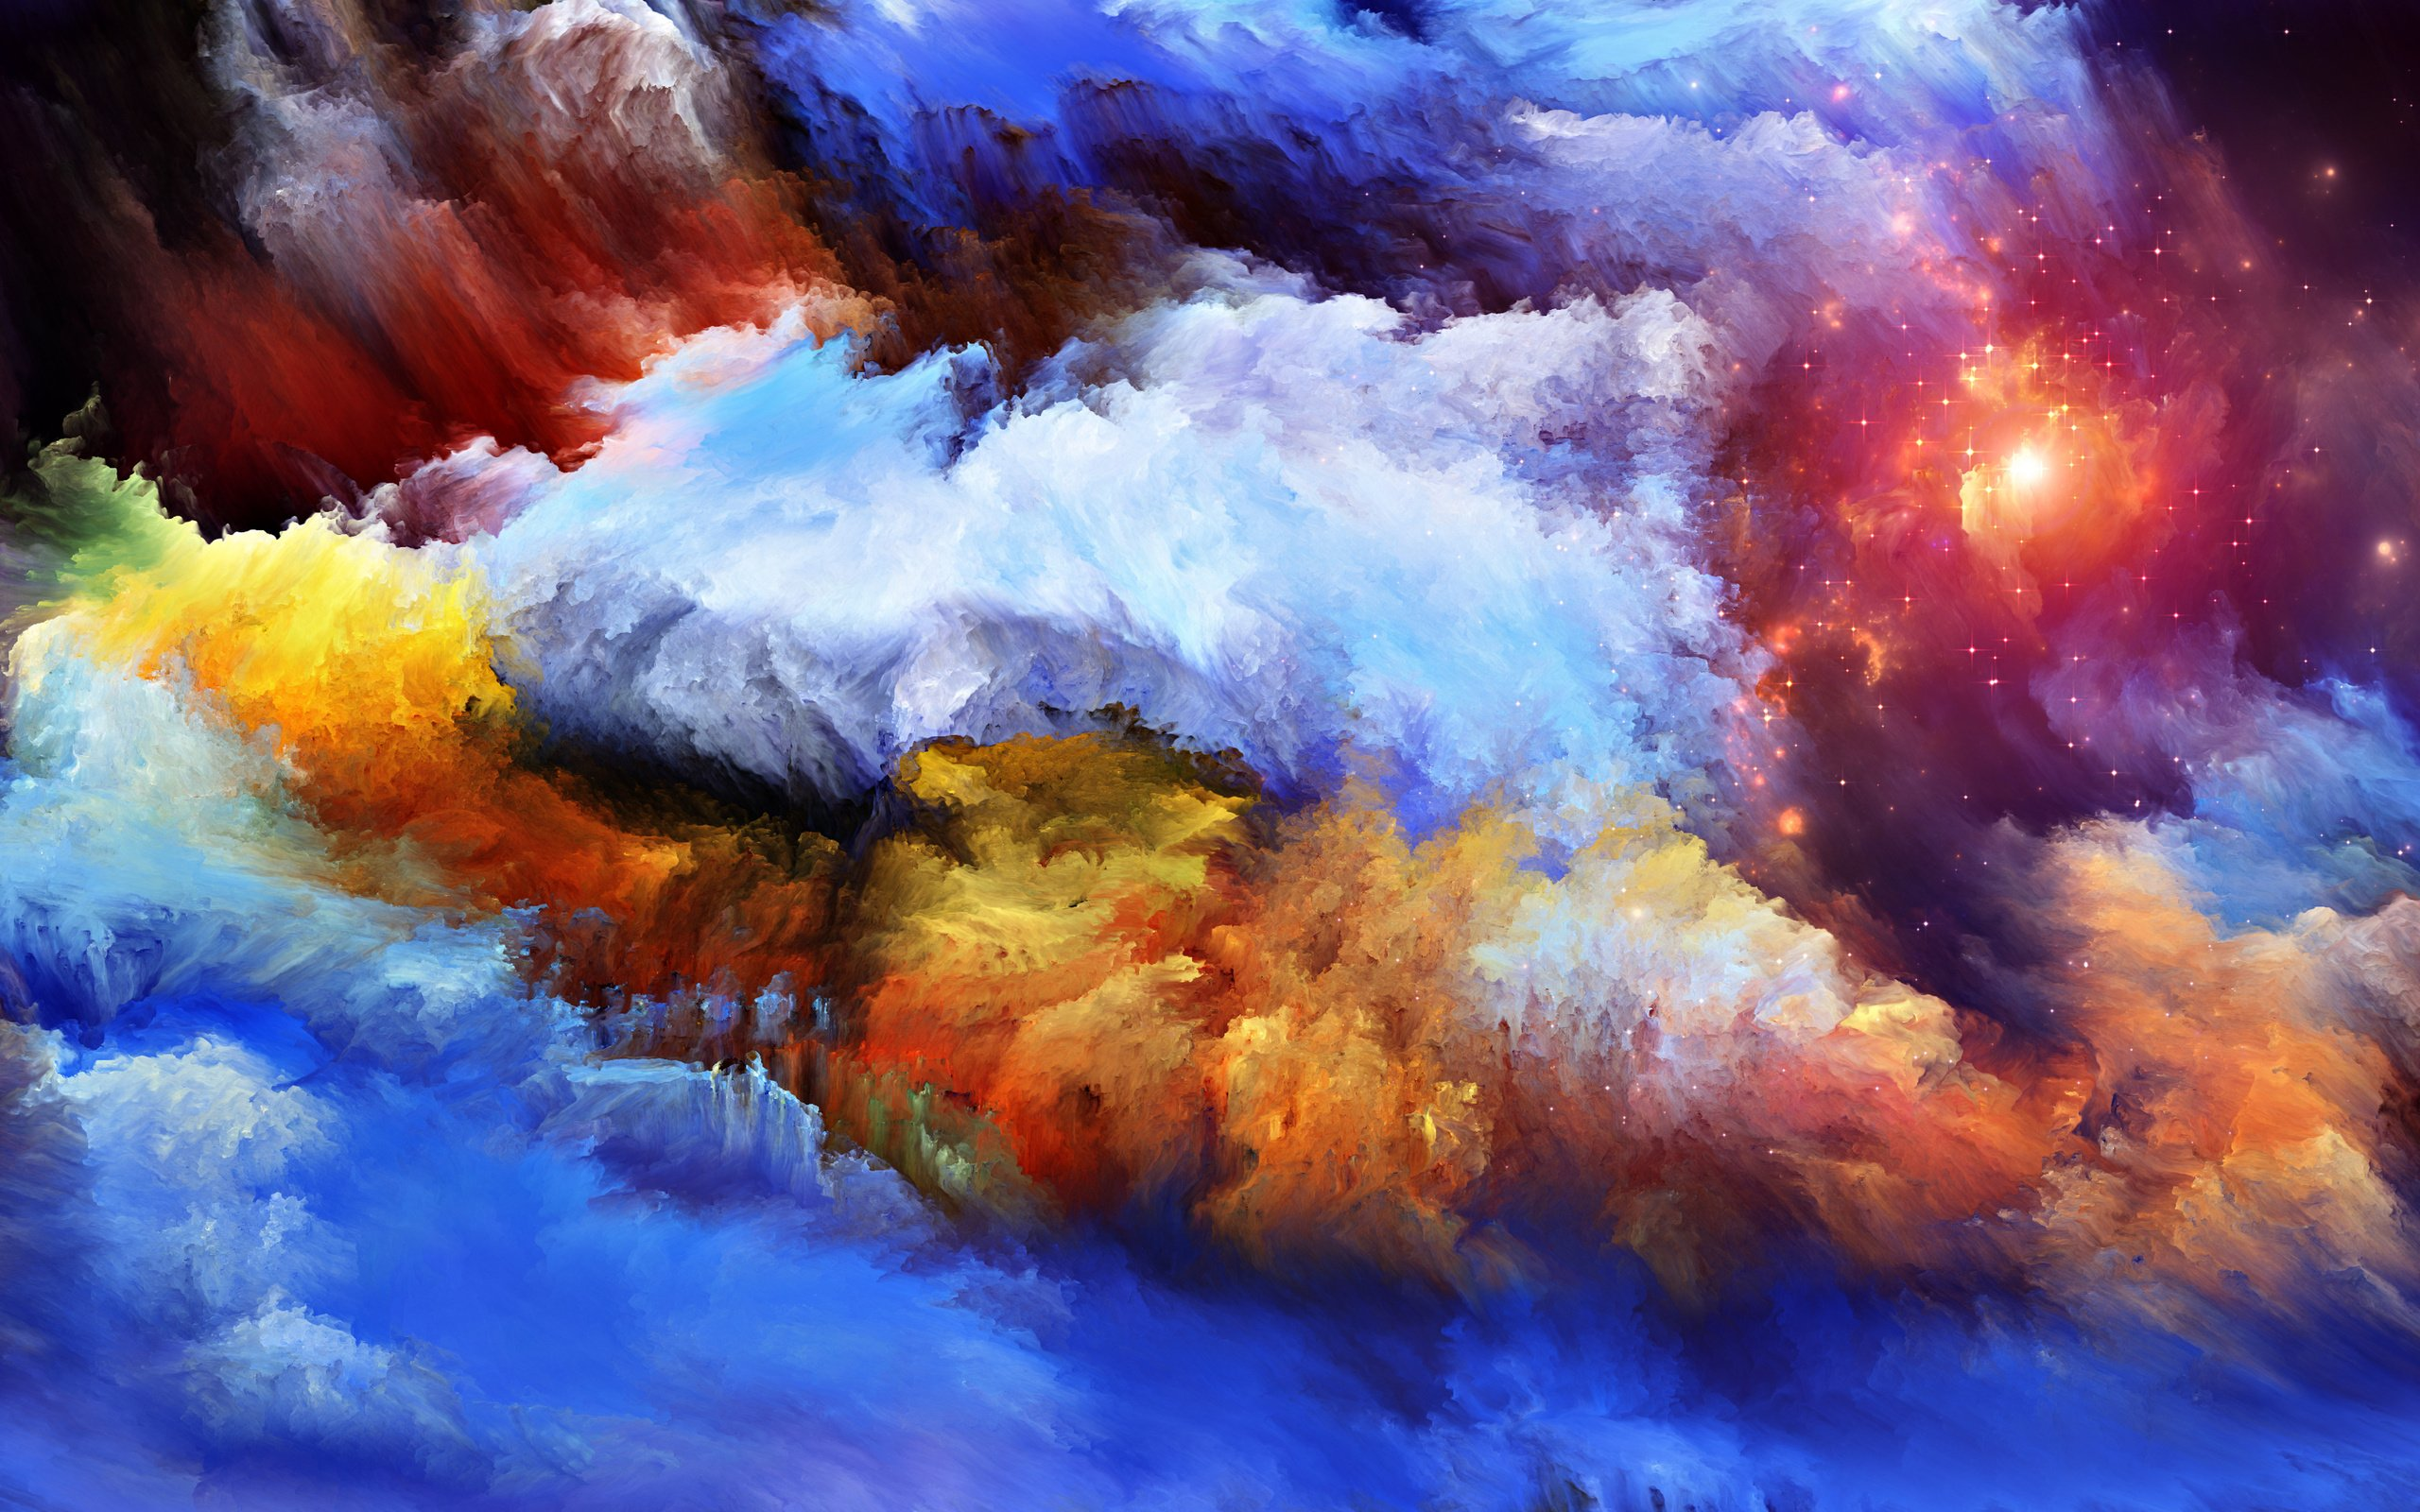 Colourful Fantasy Cloud Backgrounds: Artwork Space Stars Nebula Painting Wallpaper